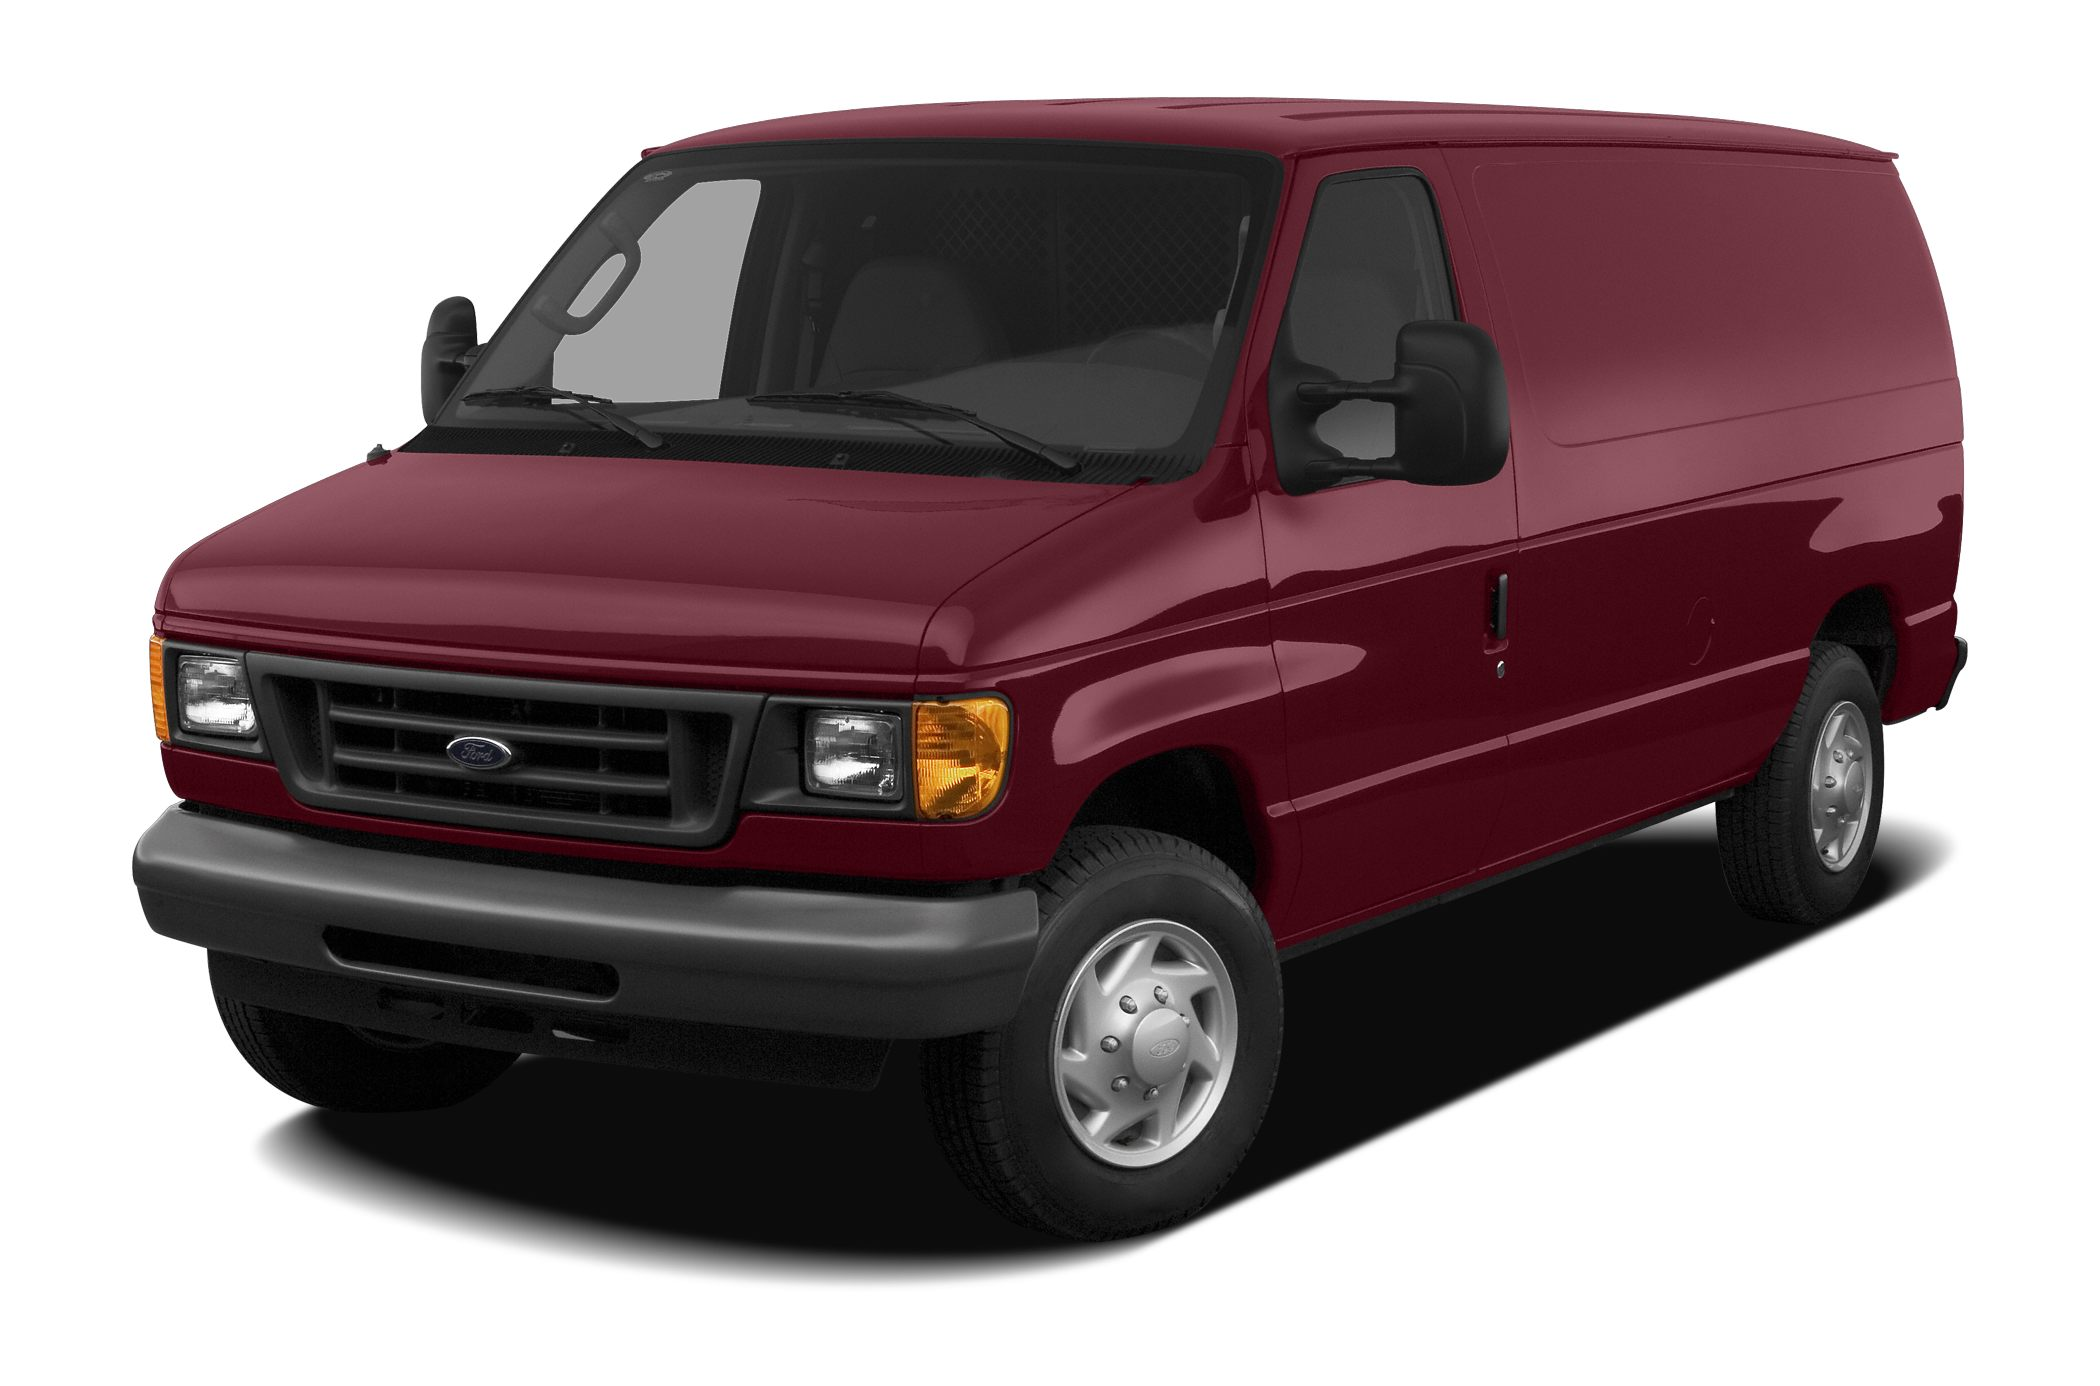 2007 Ford E350 Super Duty Cargo Van for sale in Dayton for $8,999 with 148,580 miles.